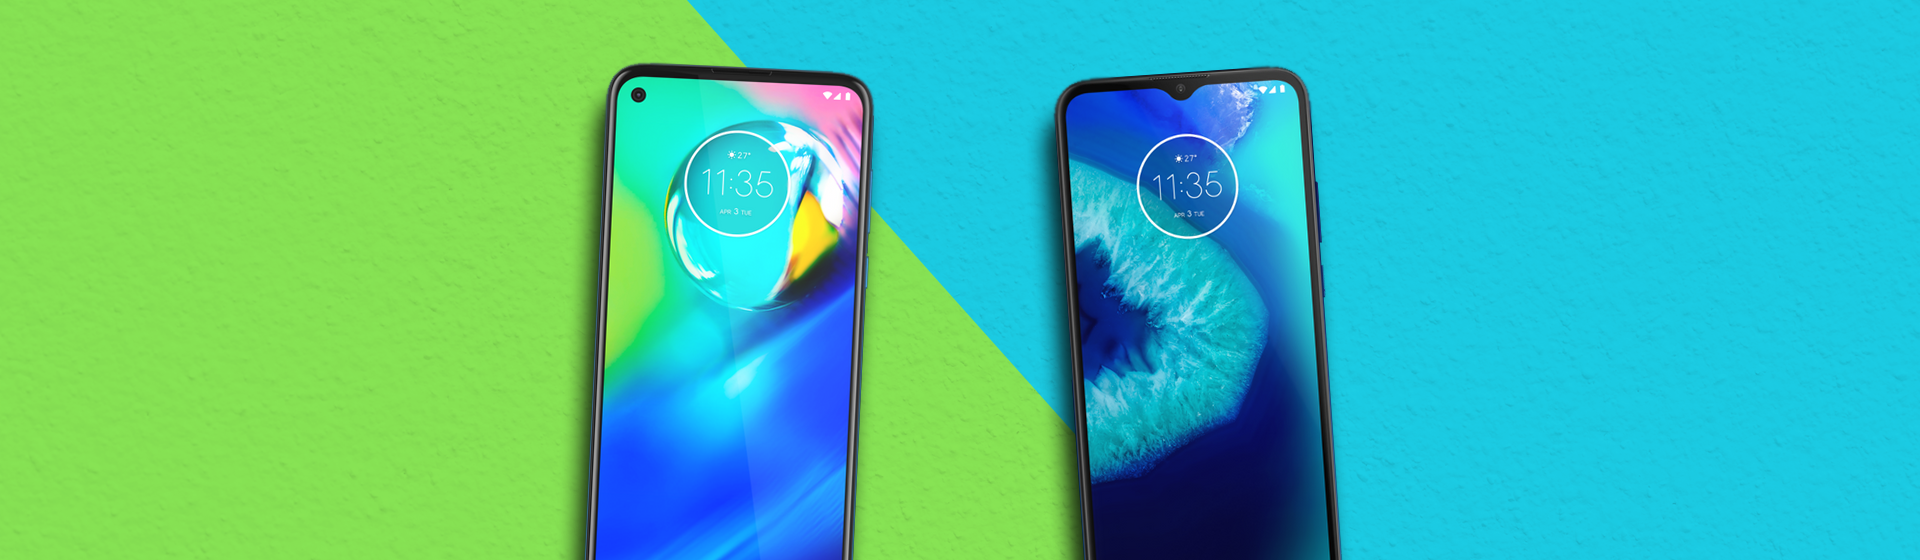 Moto G8 Power vs Moto G8 Power Lite: compare os celulares com bateria 'gigante'